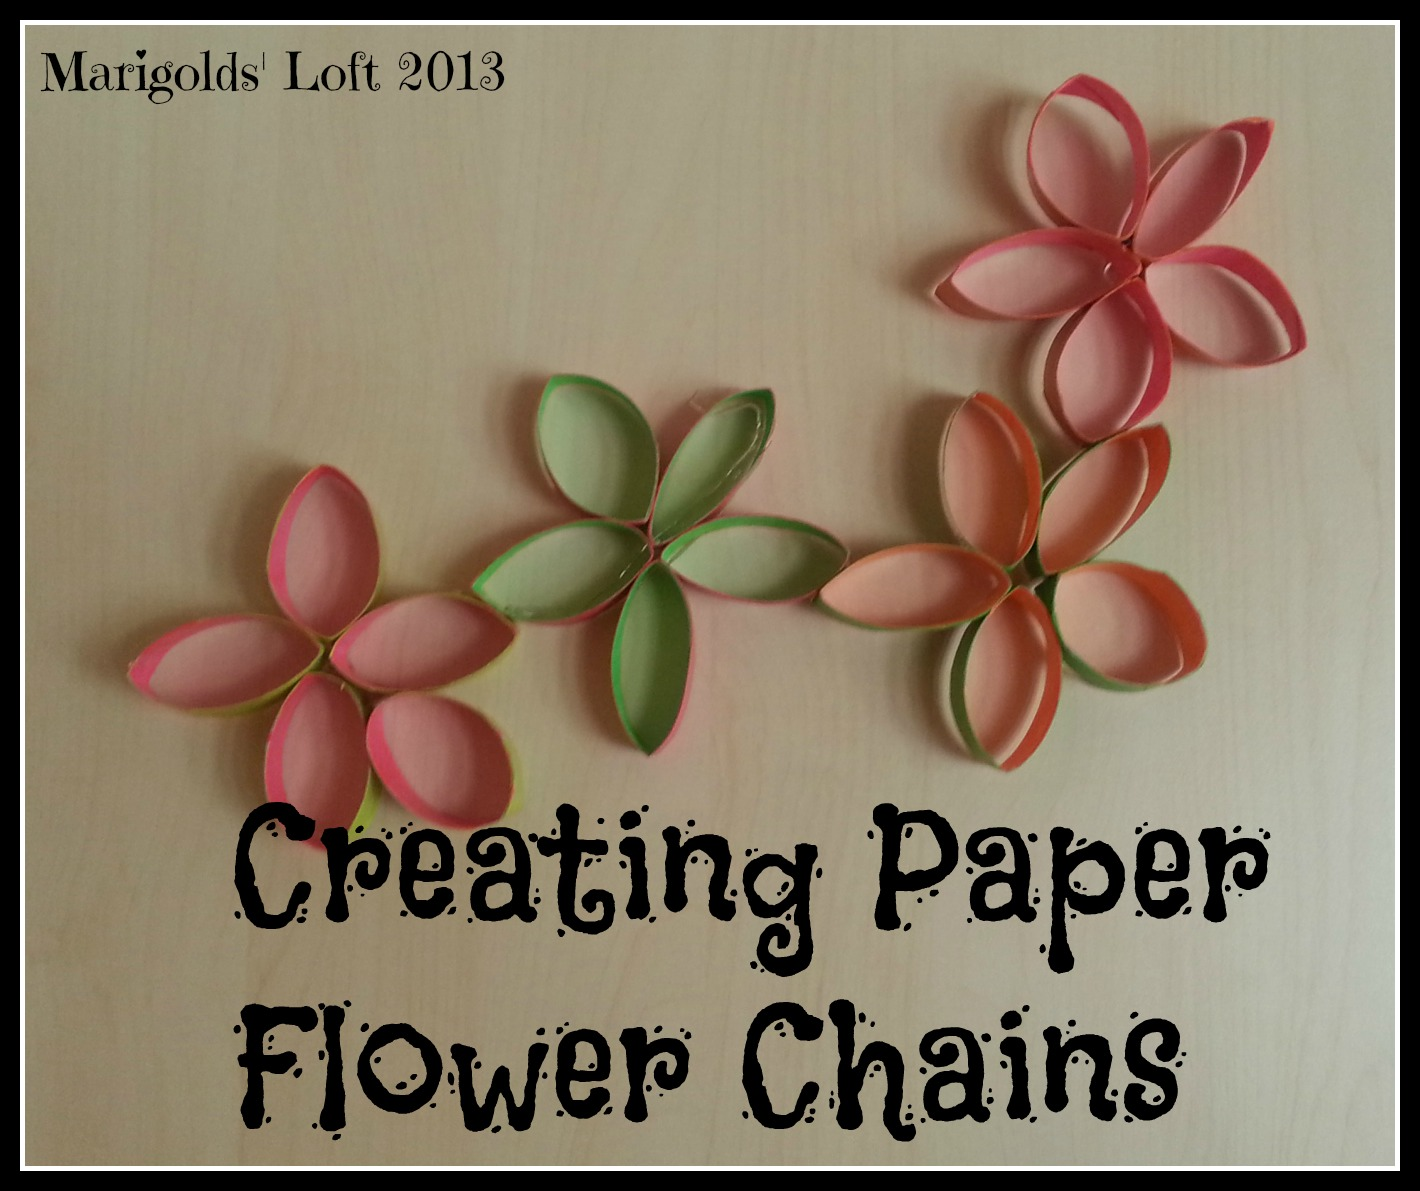 Marigolds loft recycled paper flower chains tutorial recycled paper flower chains tutorial mightylinksfo